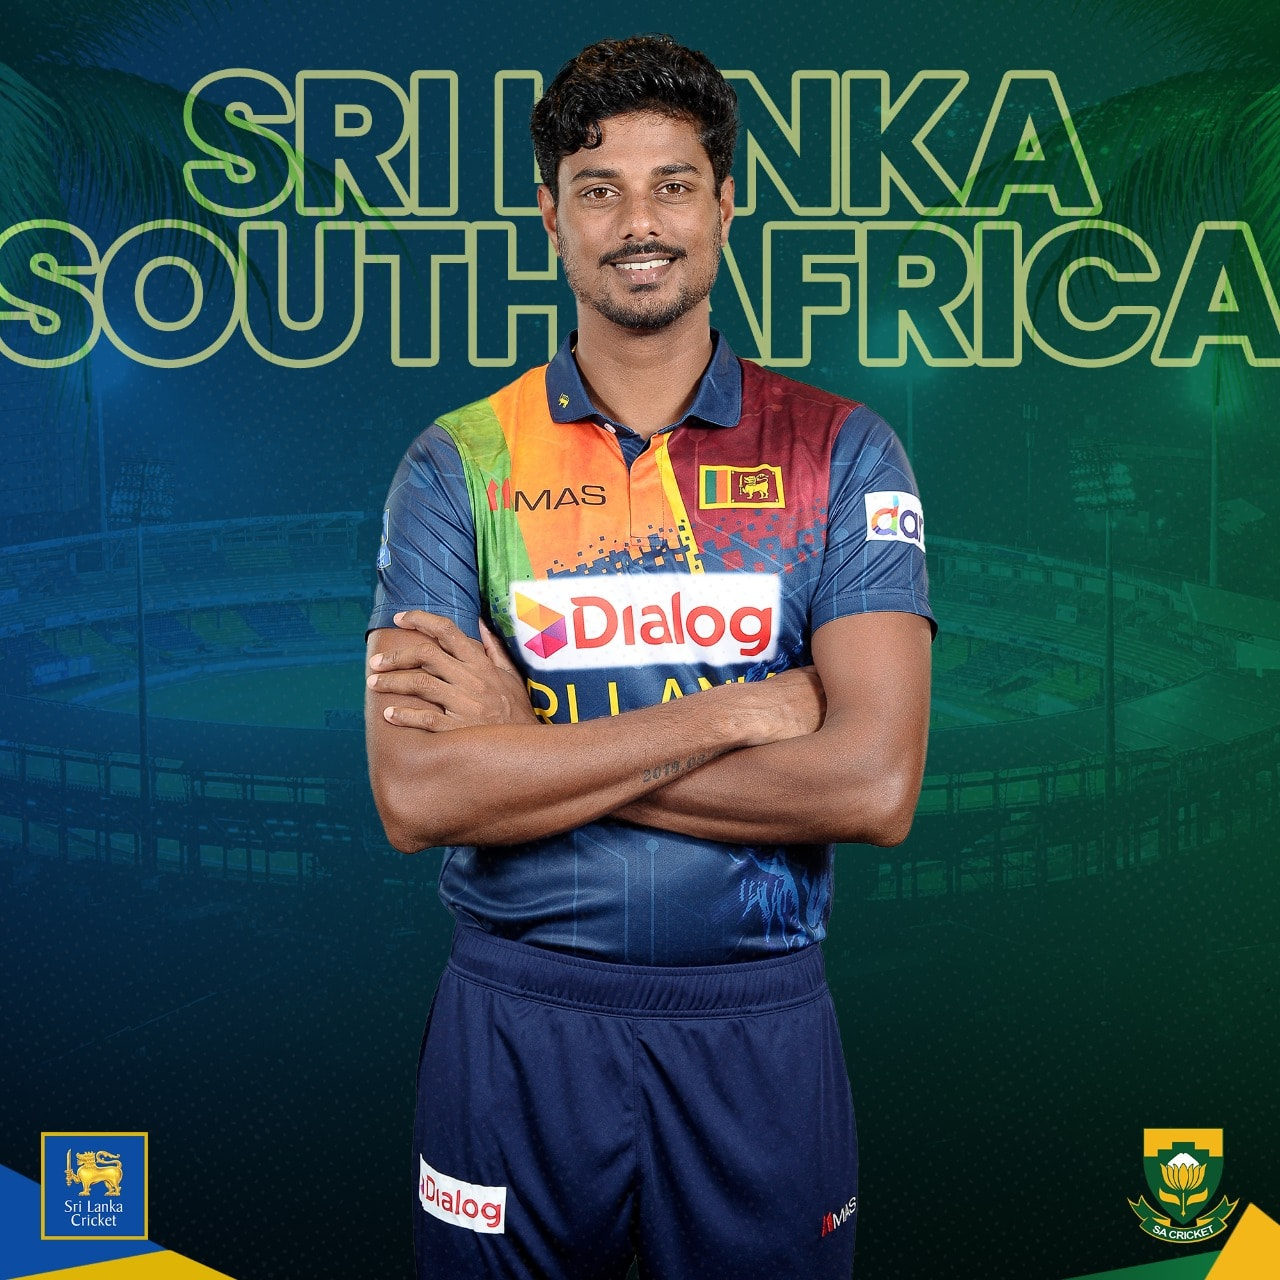 Here's Srilankan squad for the T20I series vs south Africa